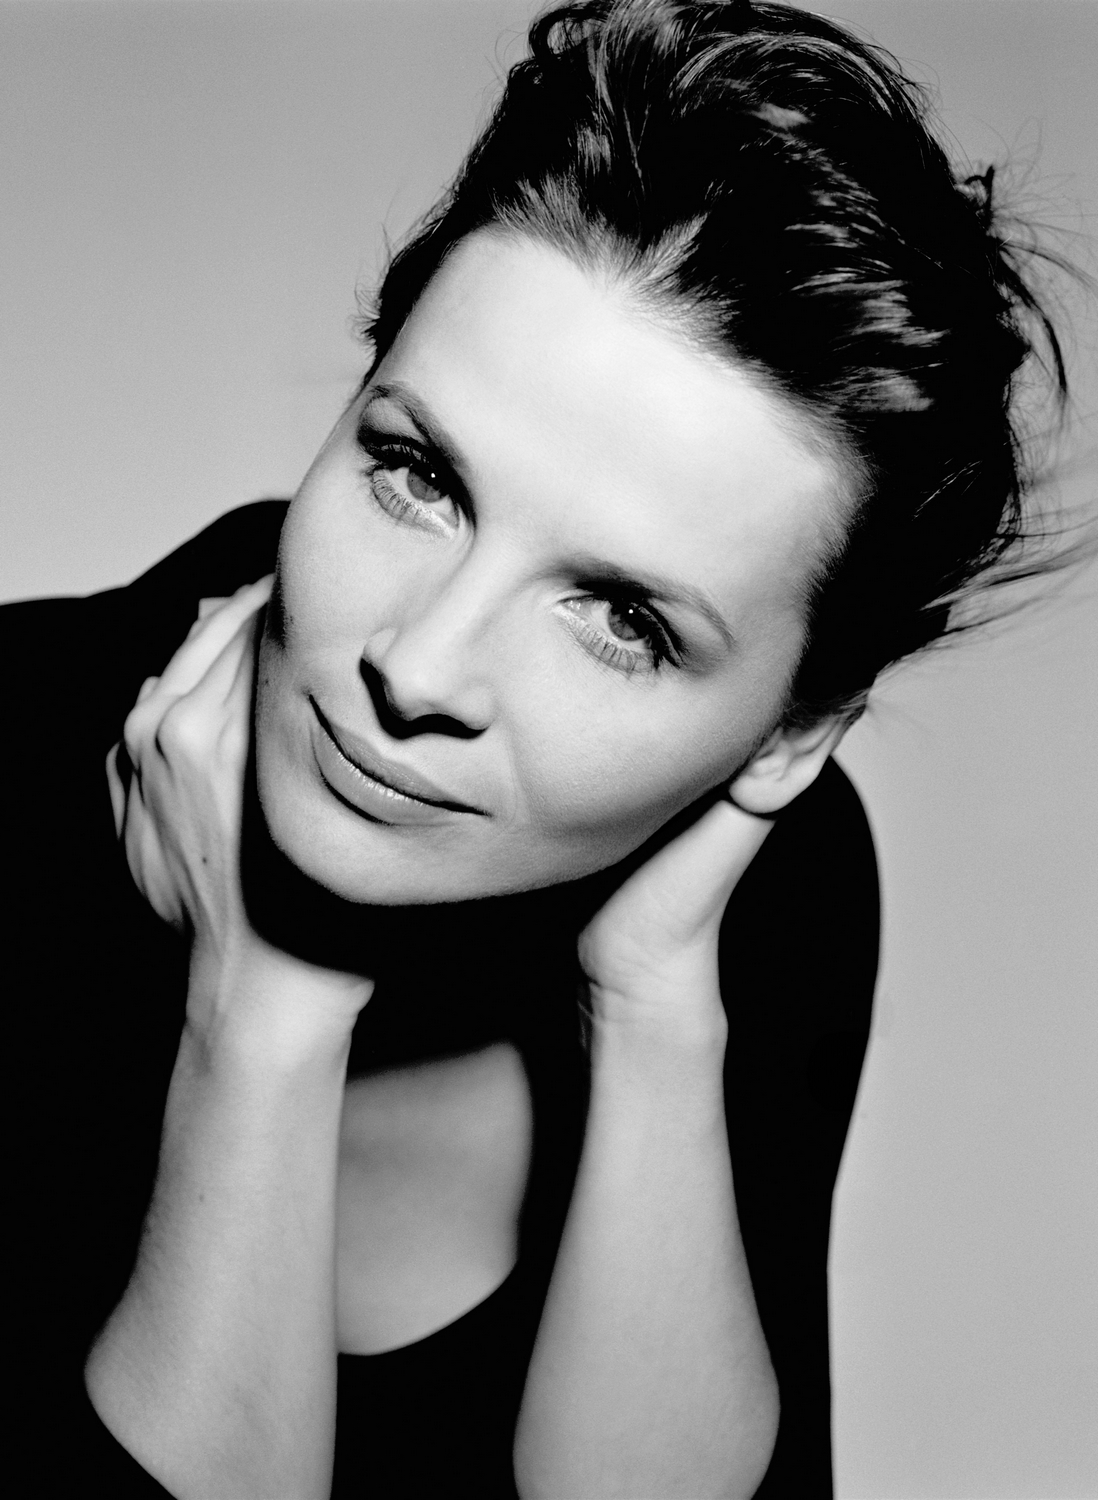 actress bollywood tamil juliette binoche wallpaper. Black Bedroom Furniture Sets. Home Design Ideas